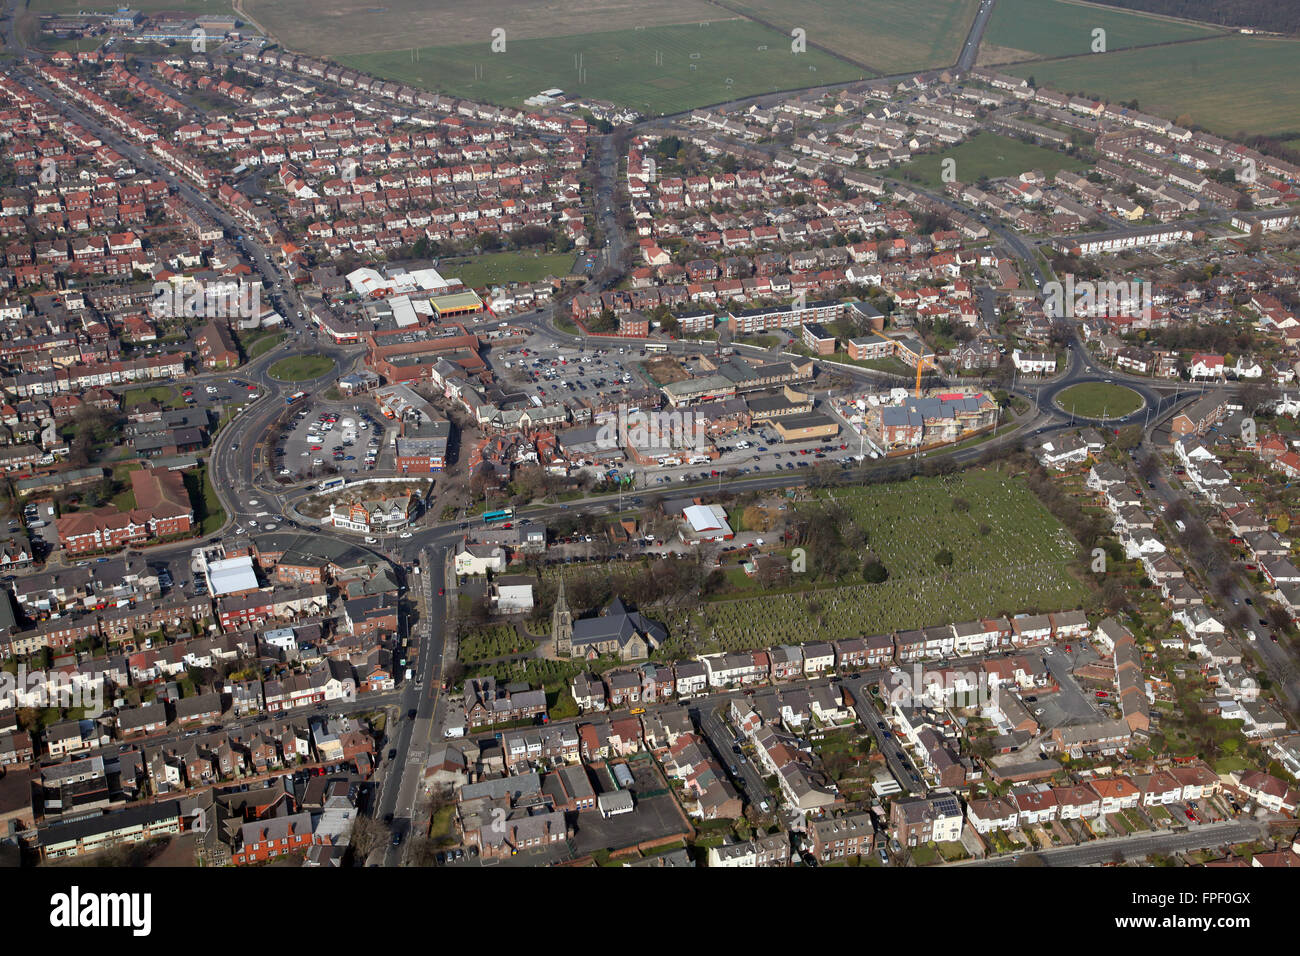 aerial view of Crosby town centre, Liverpool, Merseyside, UK - Stock Image